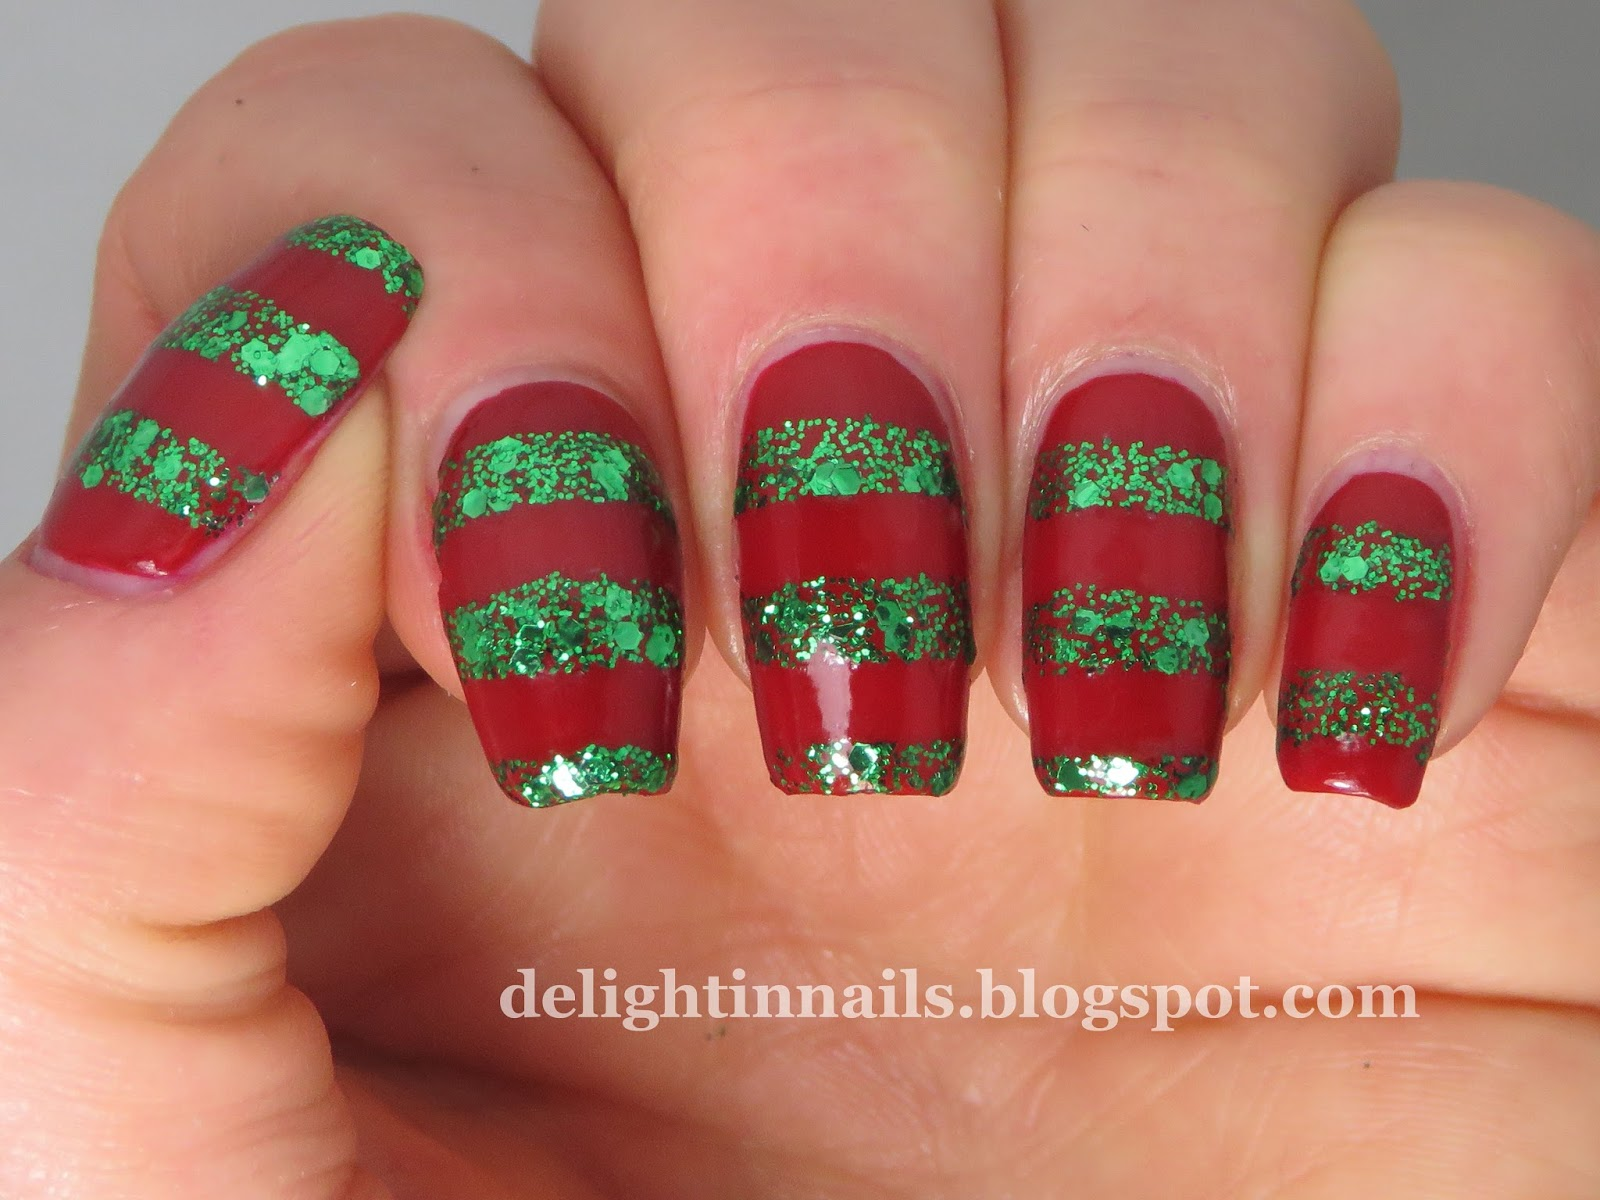 Delight In Nails: 40 Great Nail Art Ideas - Glitter Topper or Flakie